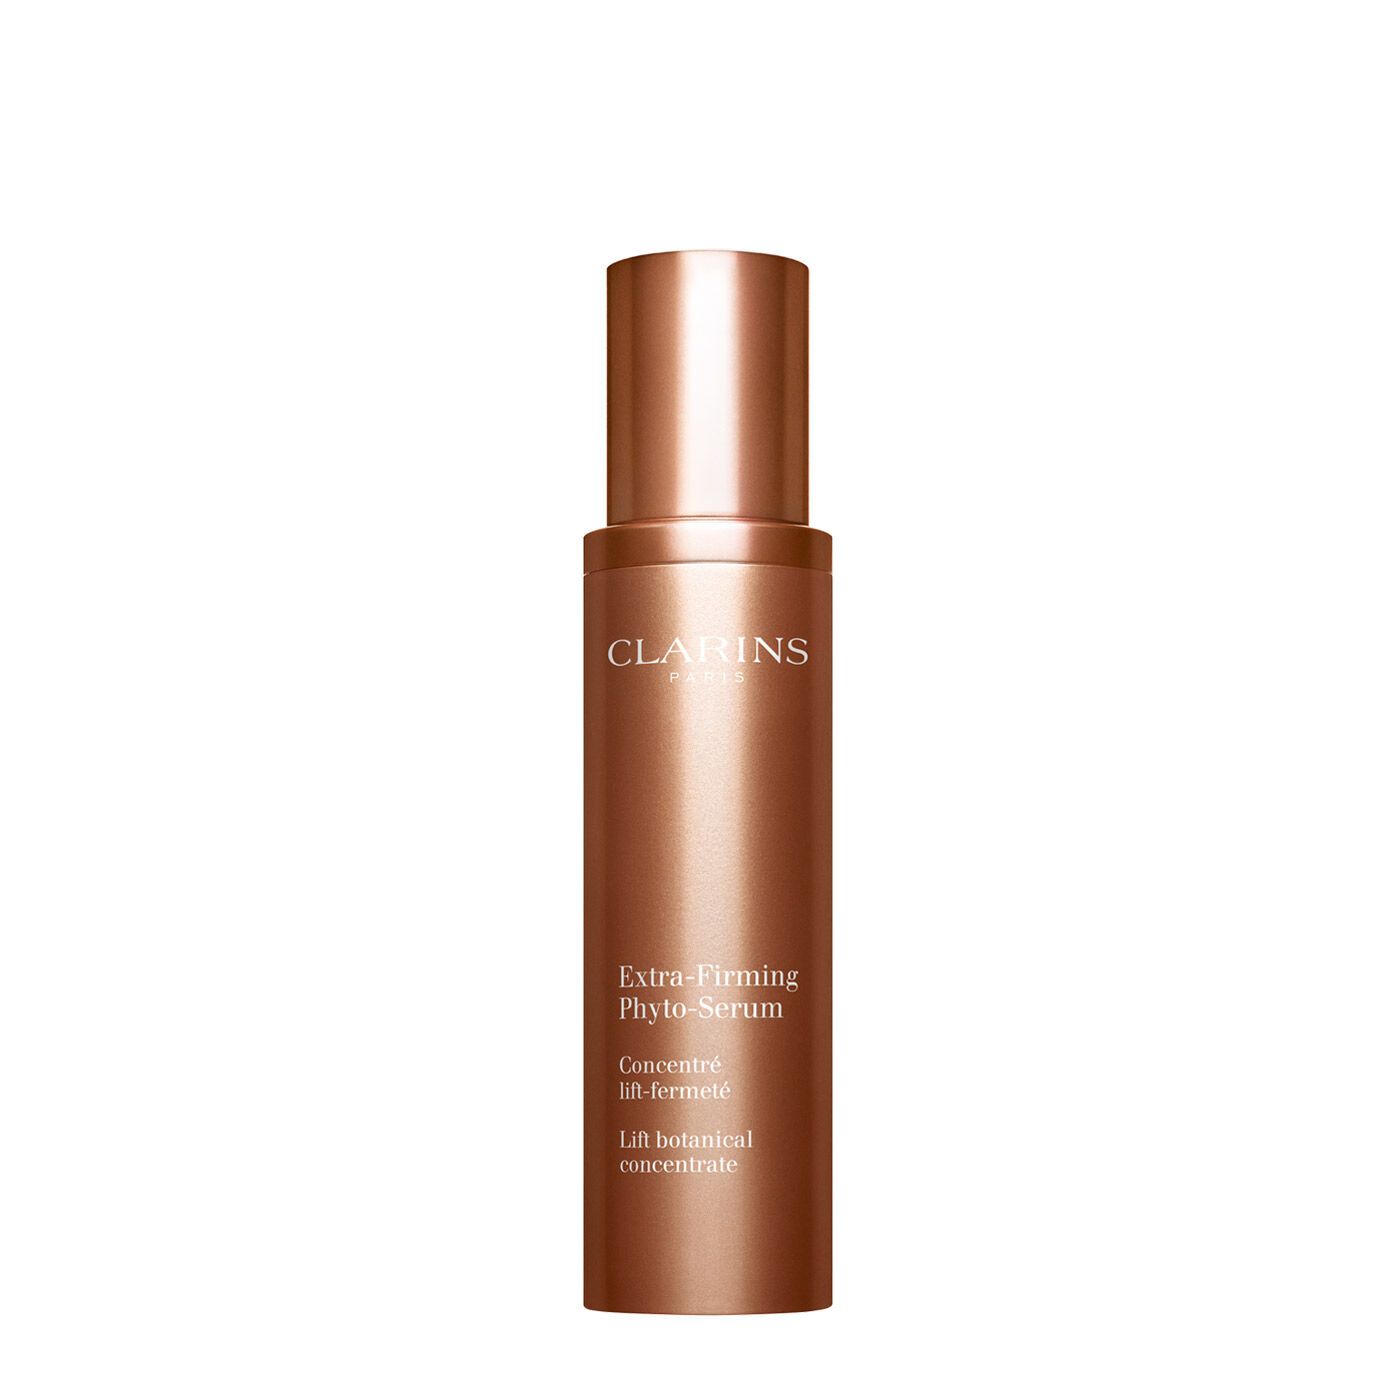 clarins firming eye cream